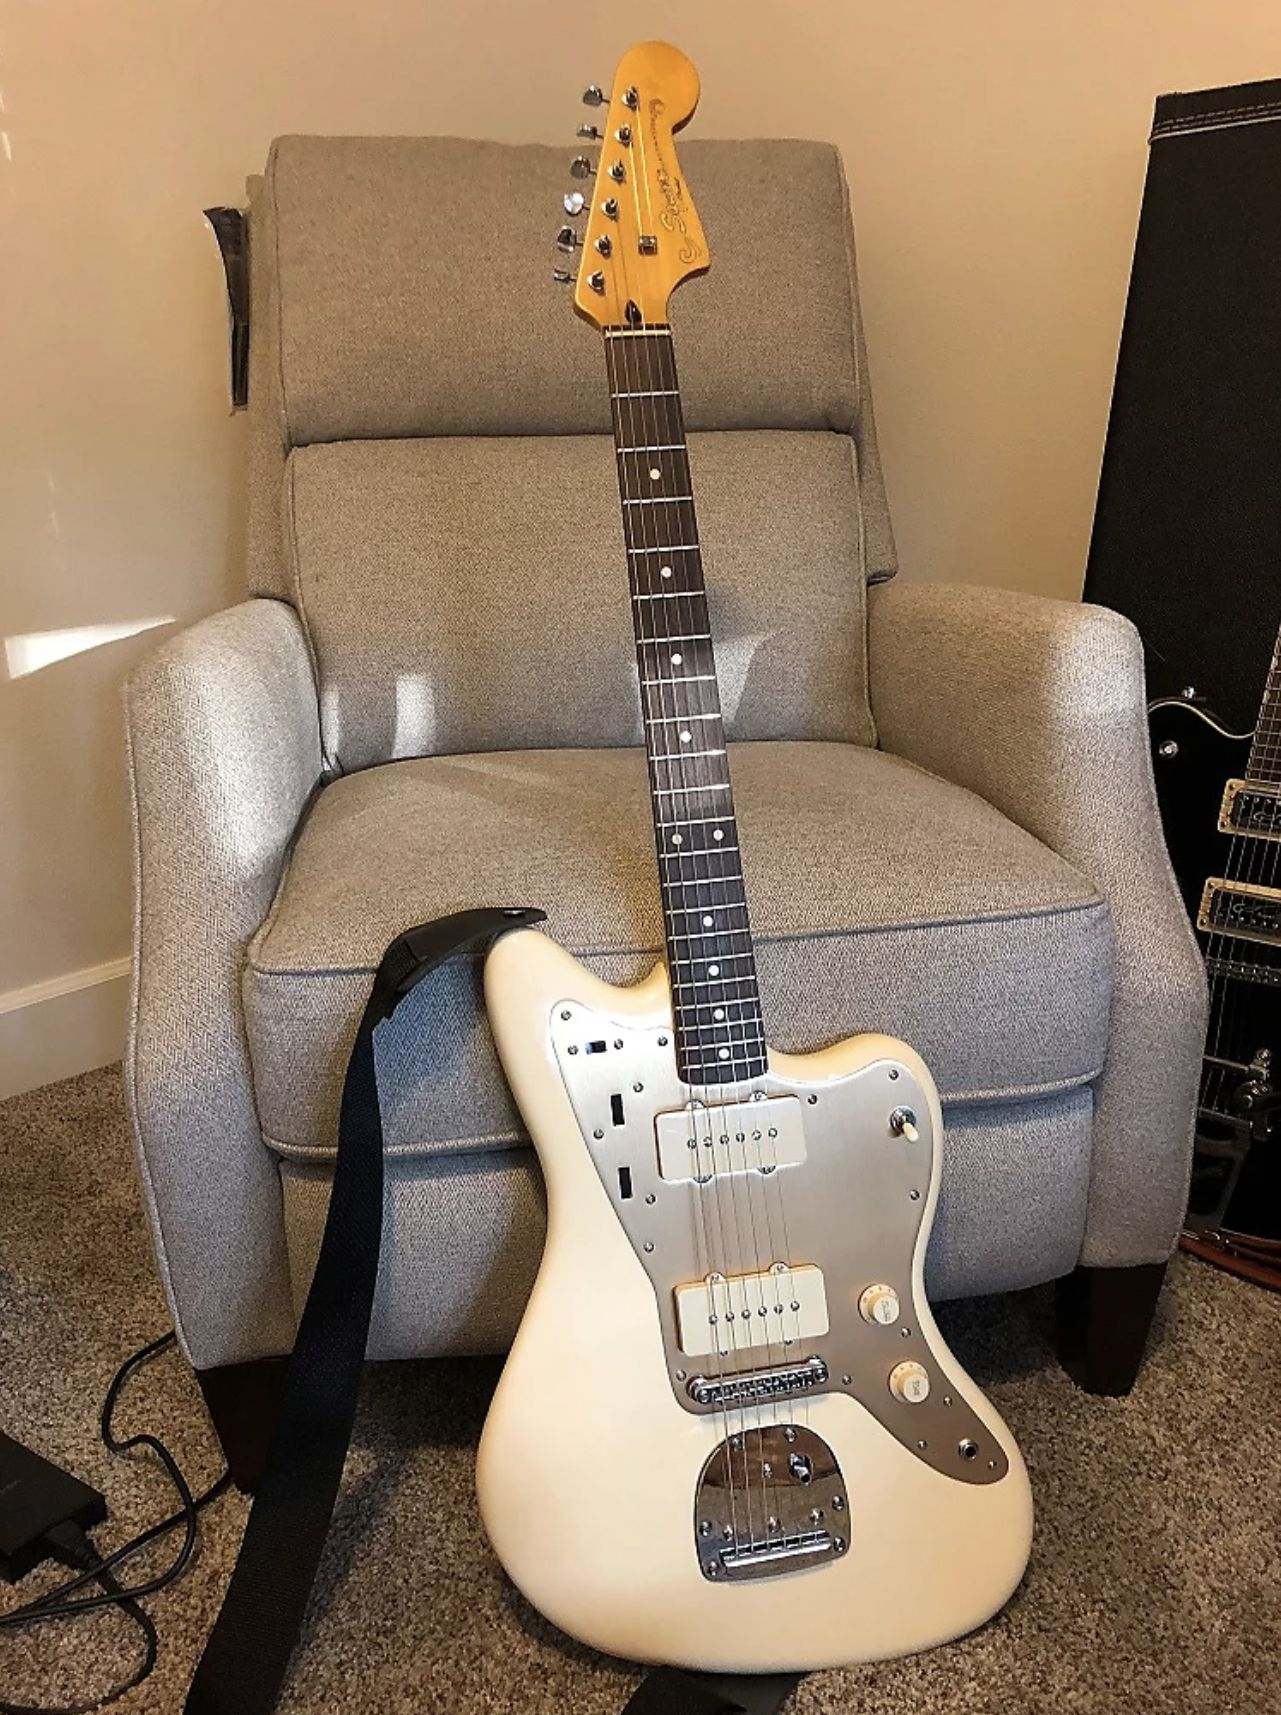 hight resolution of trusty j mascis jazzmaster but photographed in a different light so explore jazzmaster wiring jazzmaster build and more fender jaguar